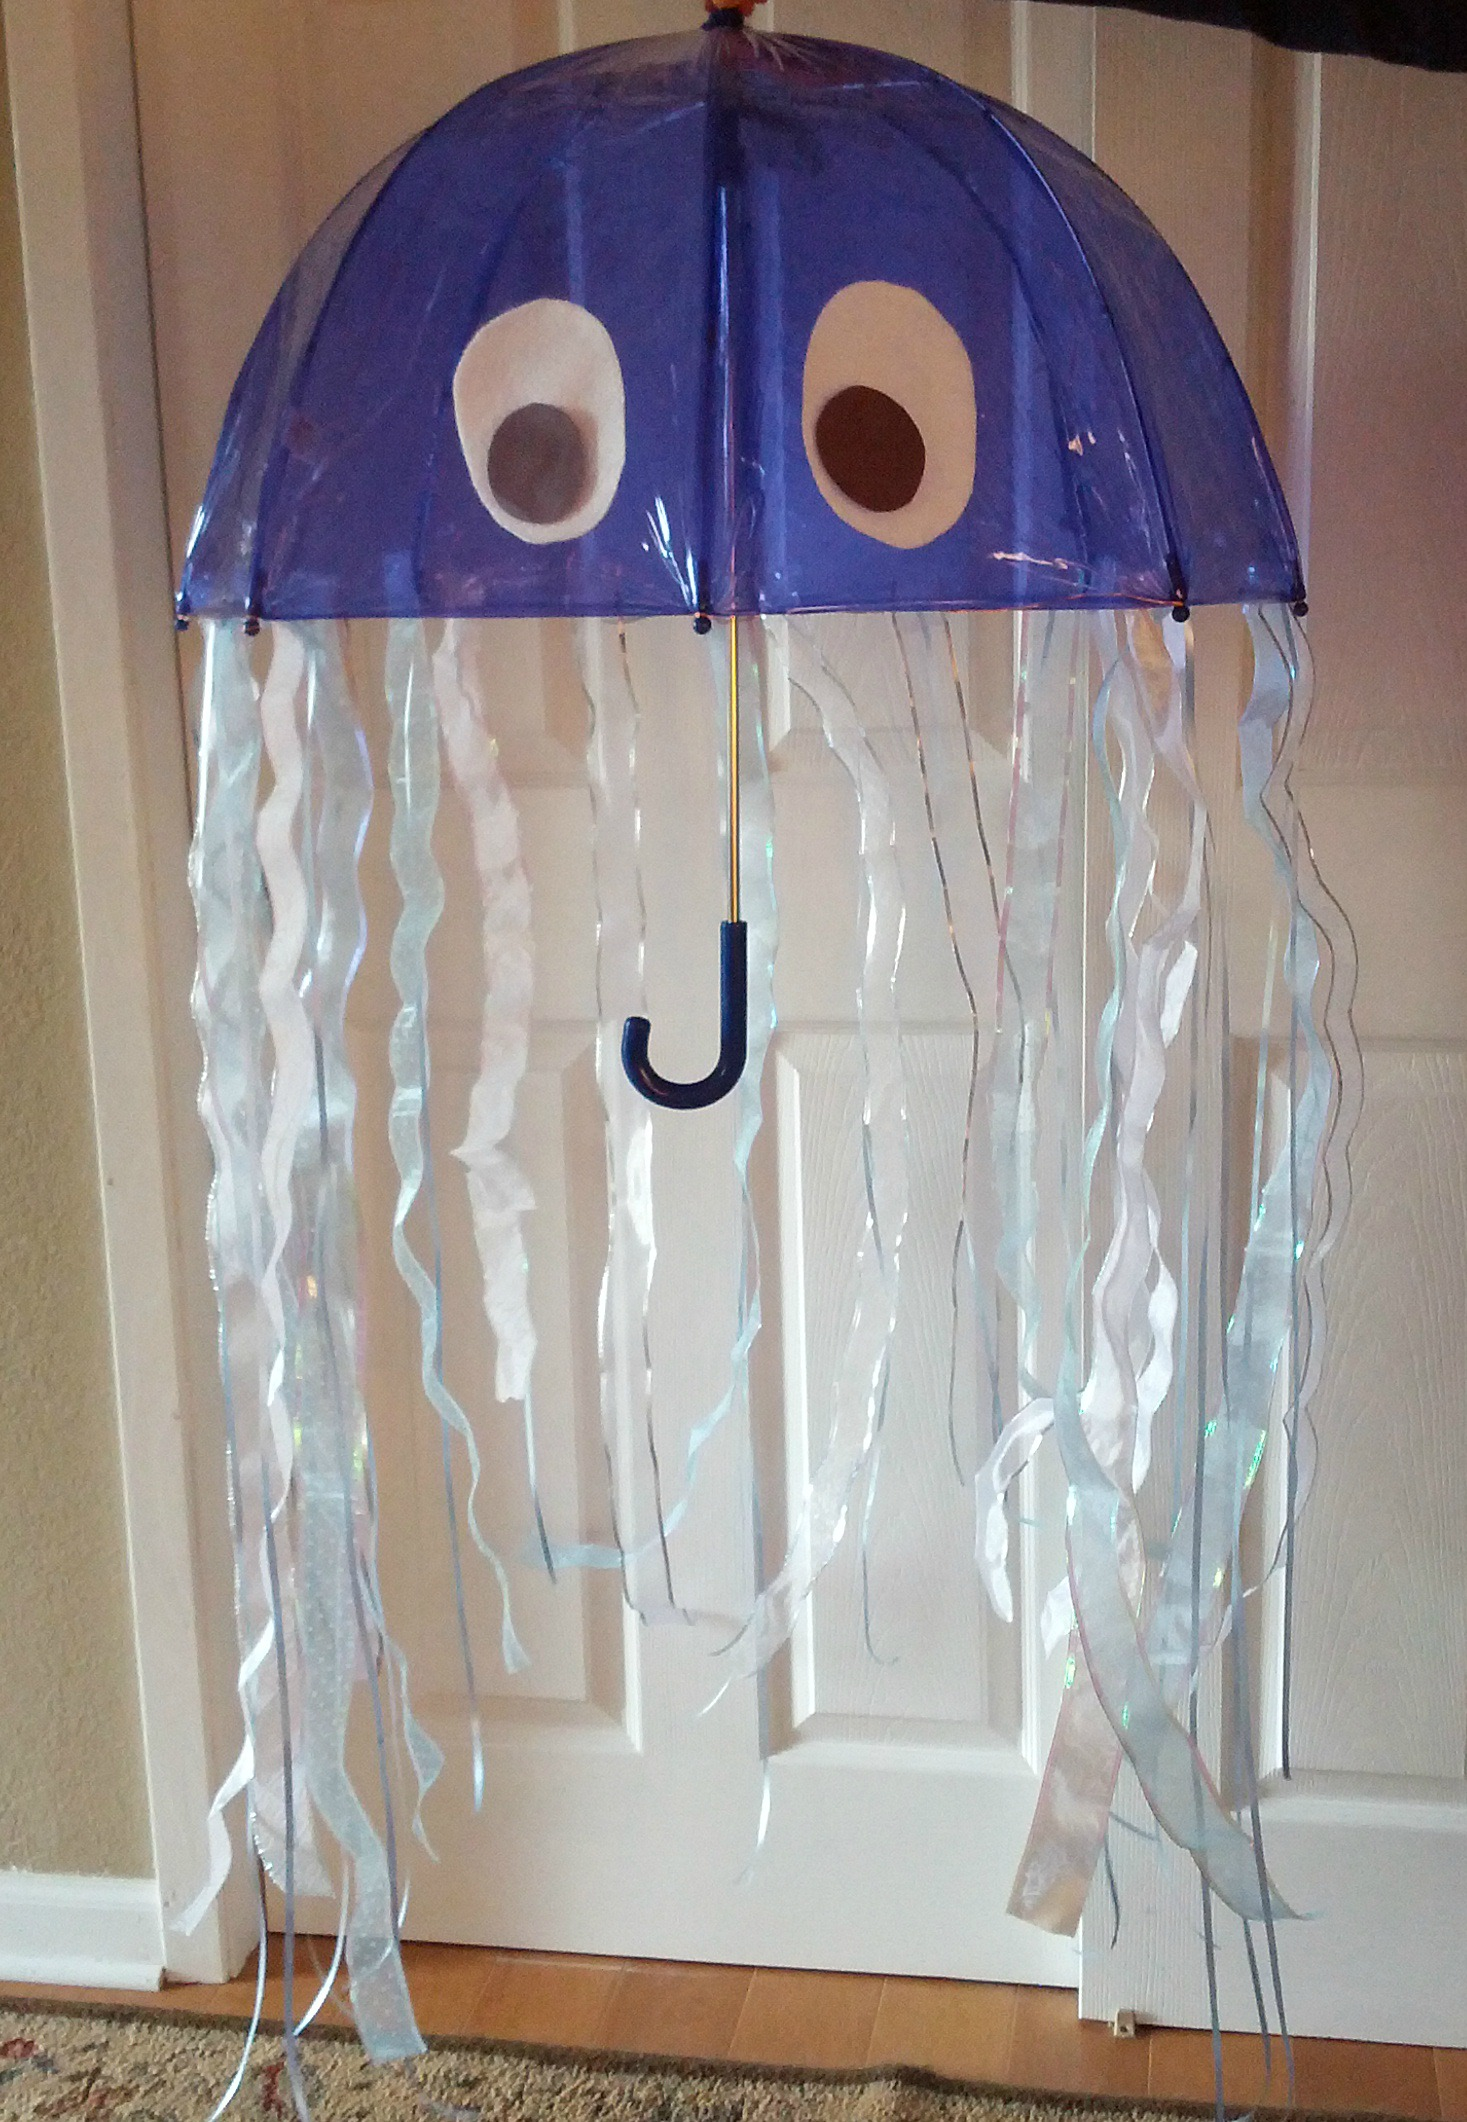 Amazing diy jellyfish costume almost the real thing jellyfish costume1 jellyfish costume2 solutioingenieria Image collections